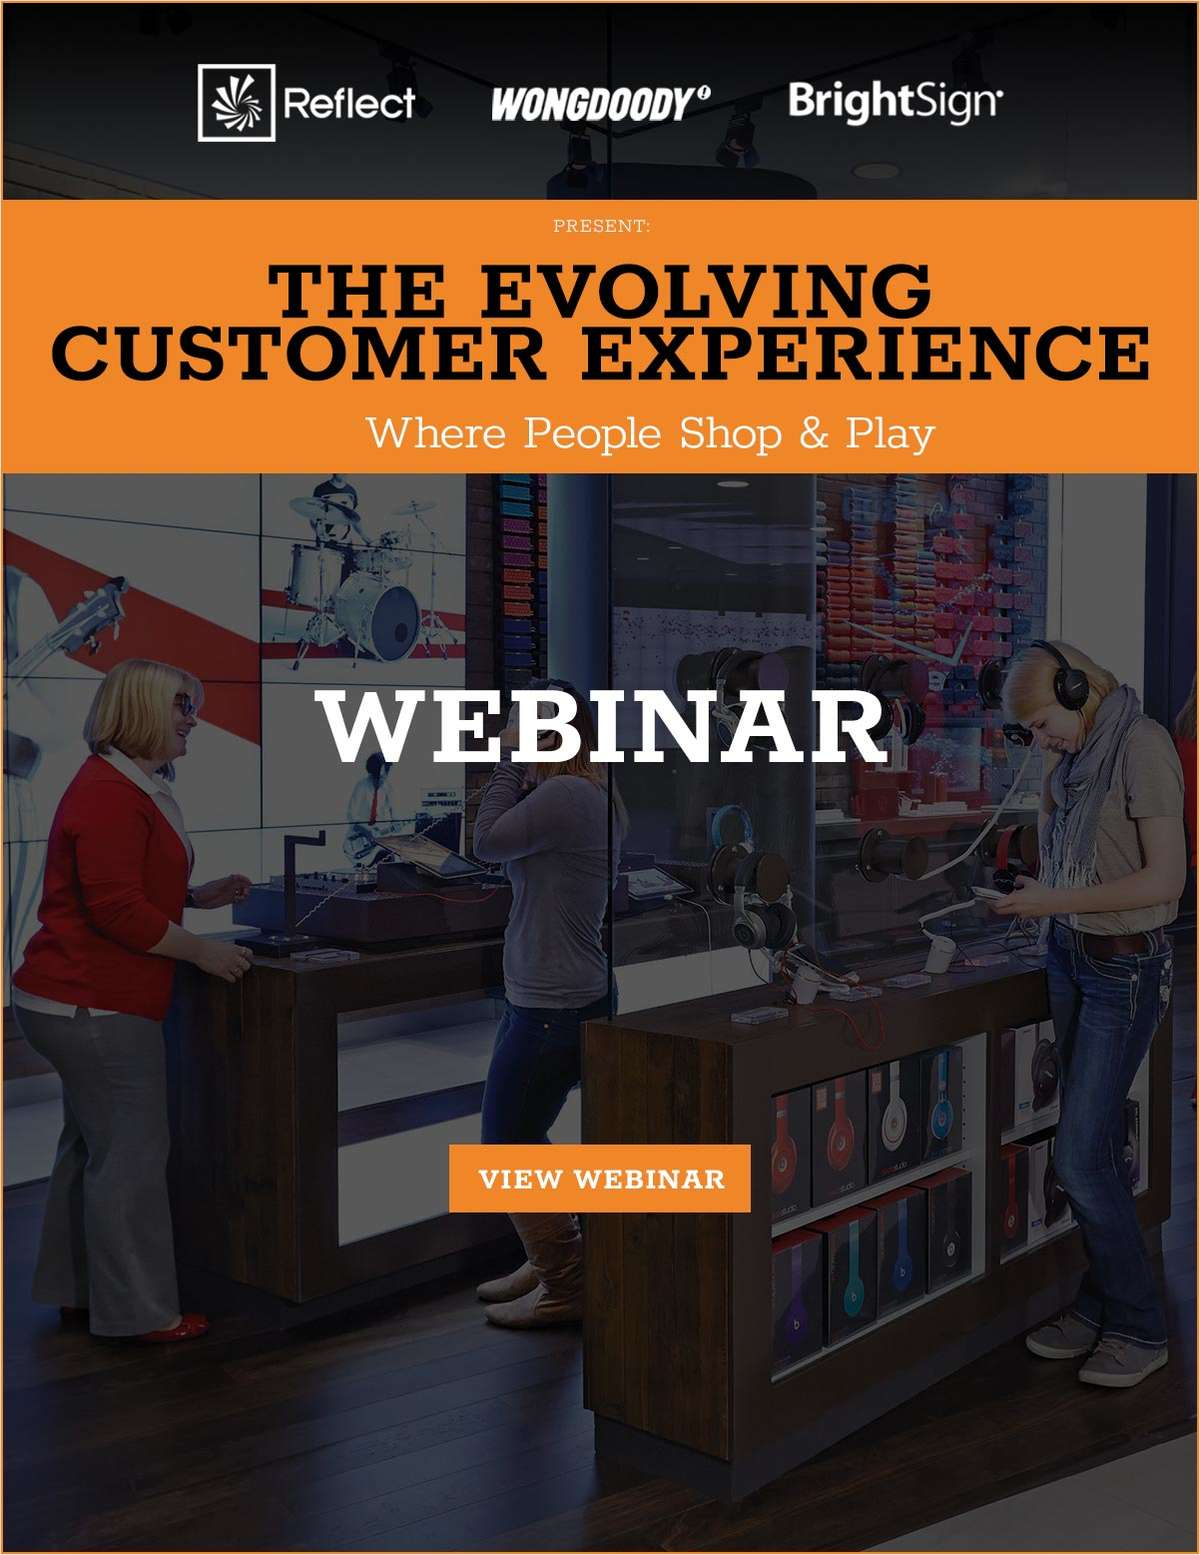 The Evolving Customer Experience - Where People Shop & Play